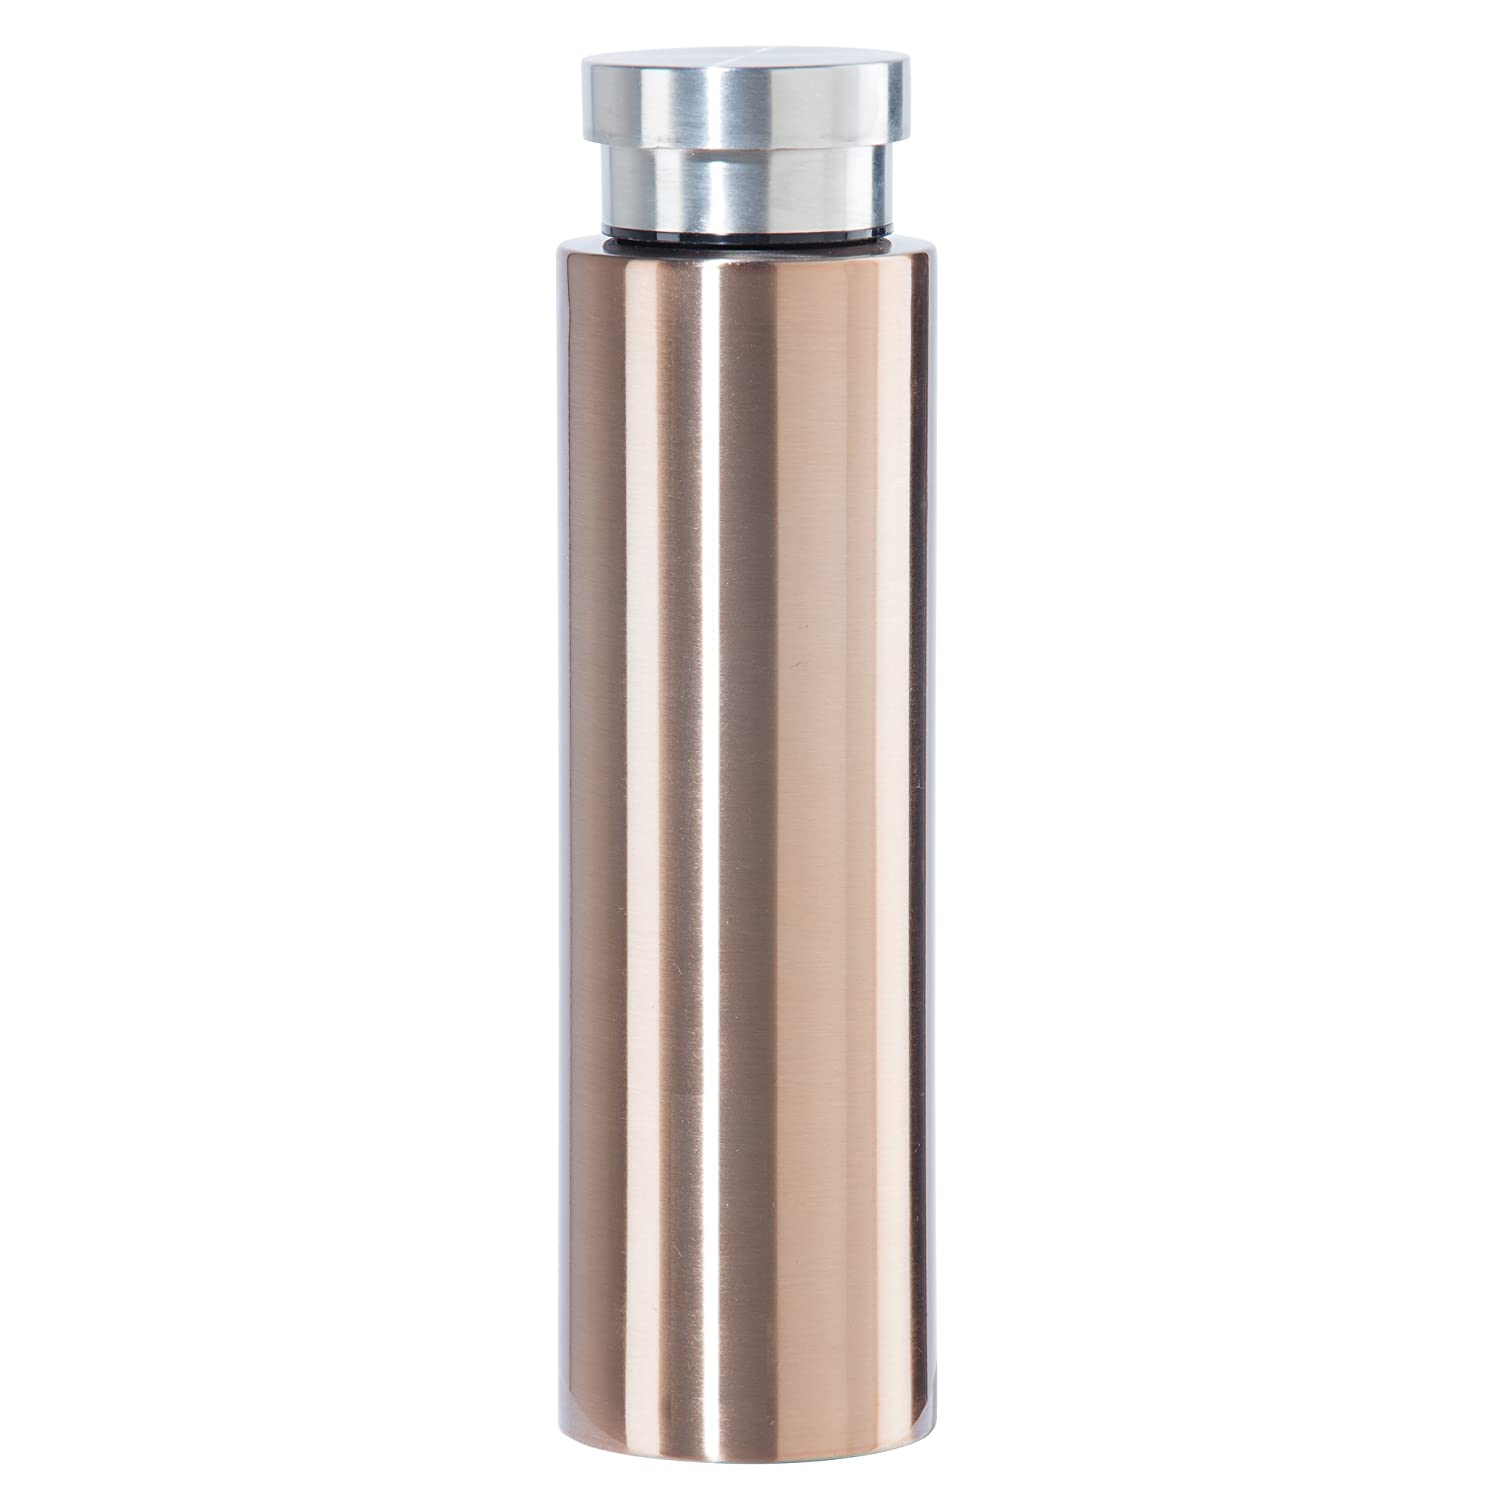 Oggi 8092.4 Stainless Steel Cosmo Lustre Double Walled Vacuum Sealed Sport Bottle with Screw Top -Gold .5 LT, 17 OZ